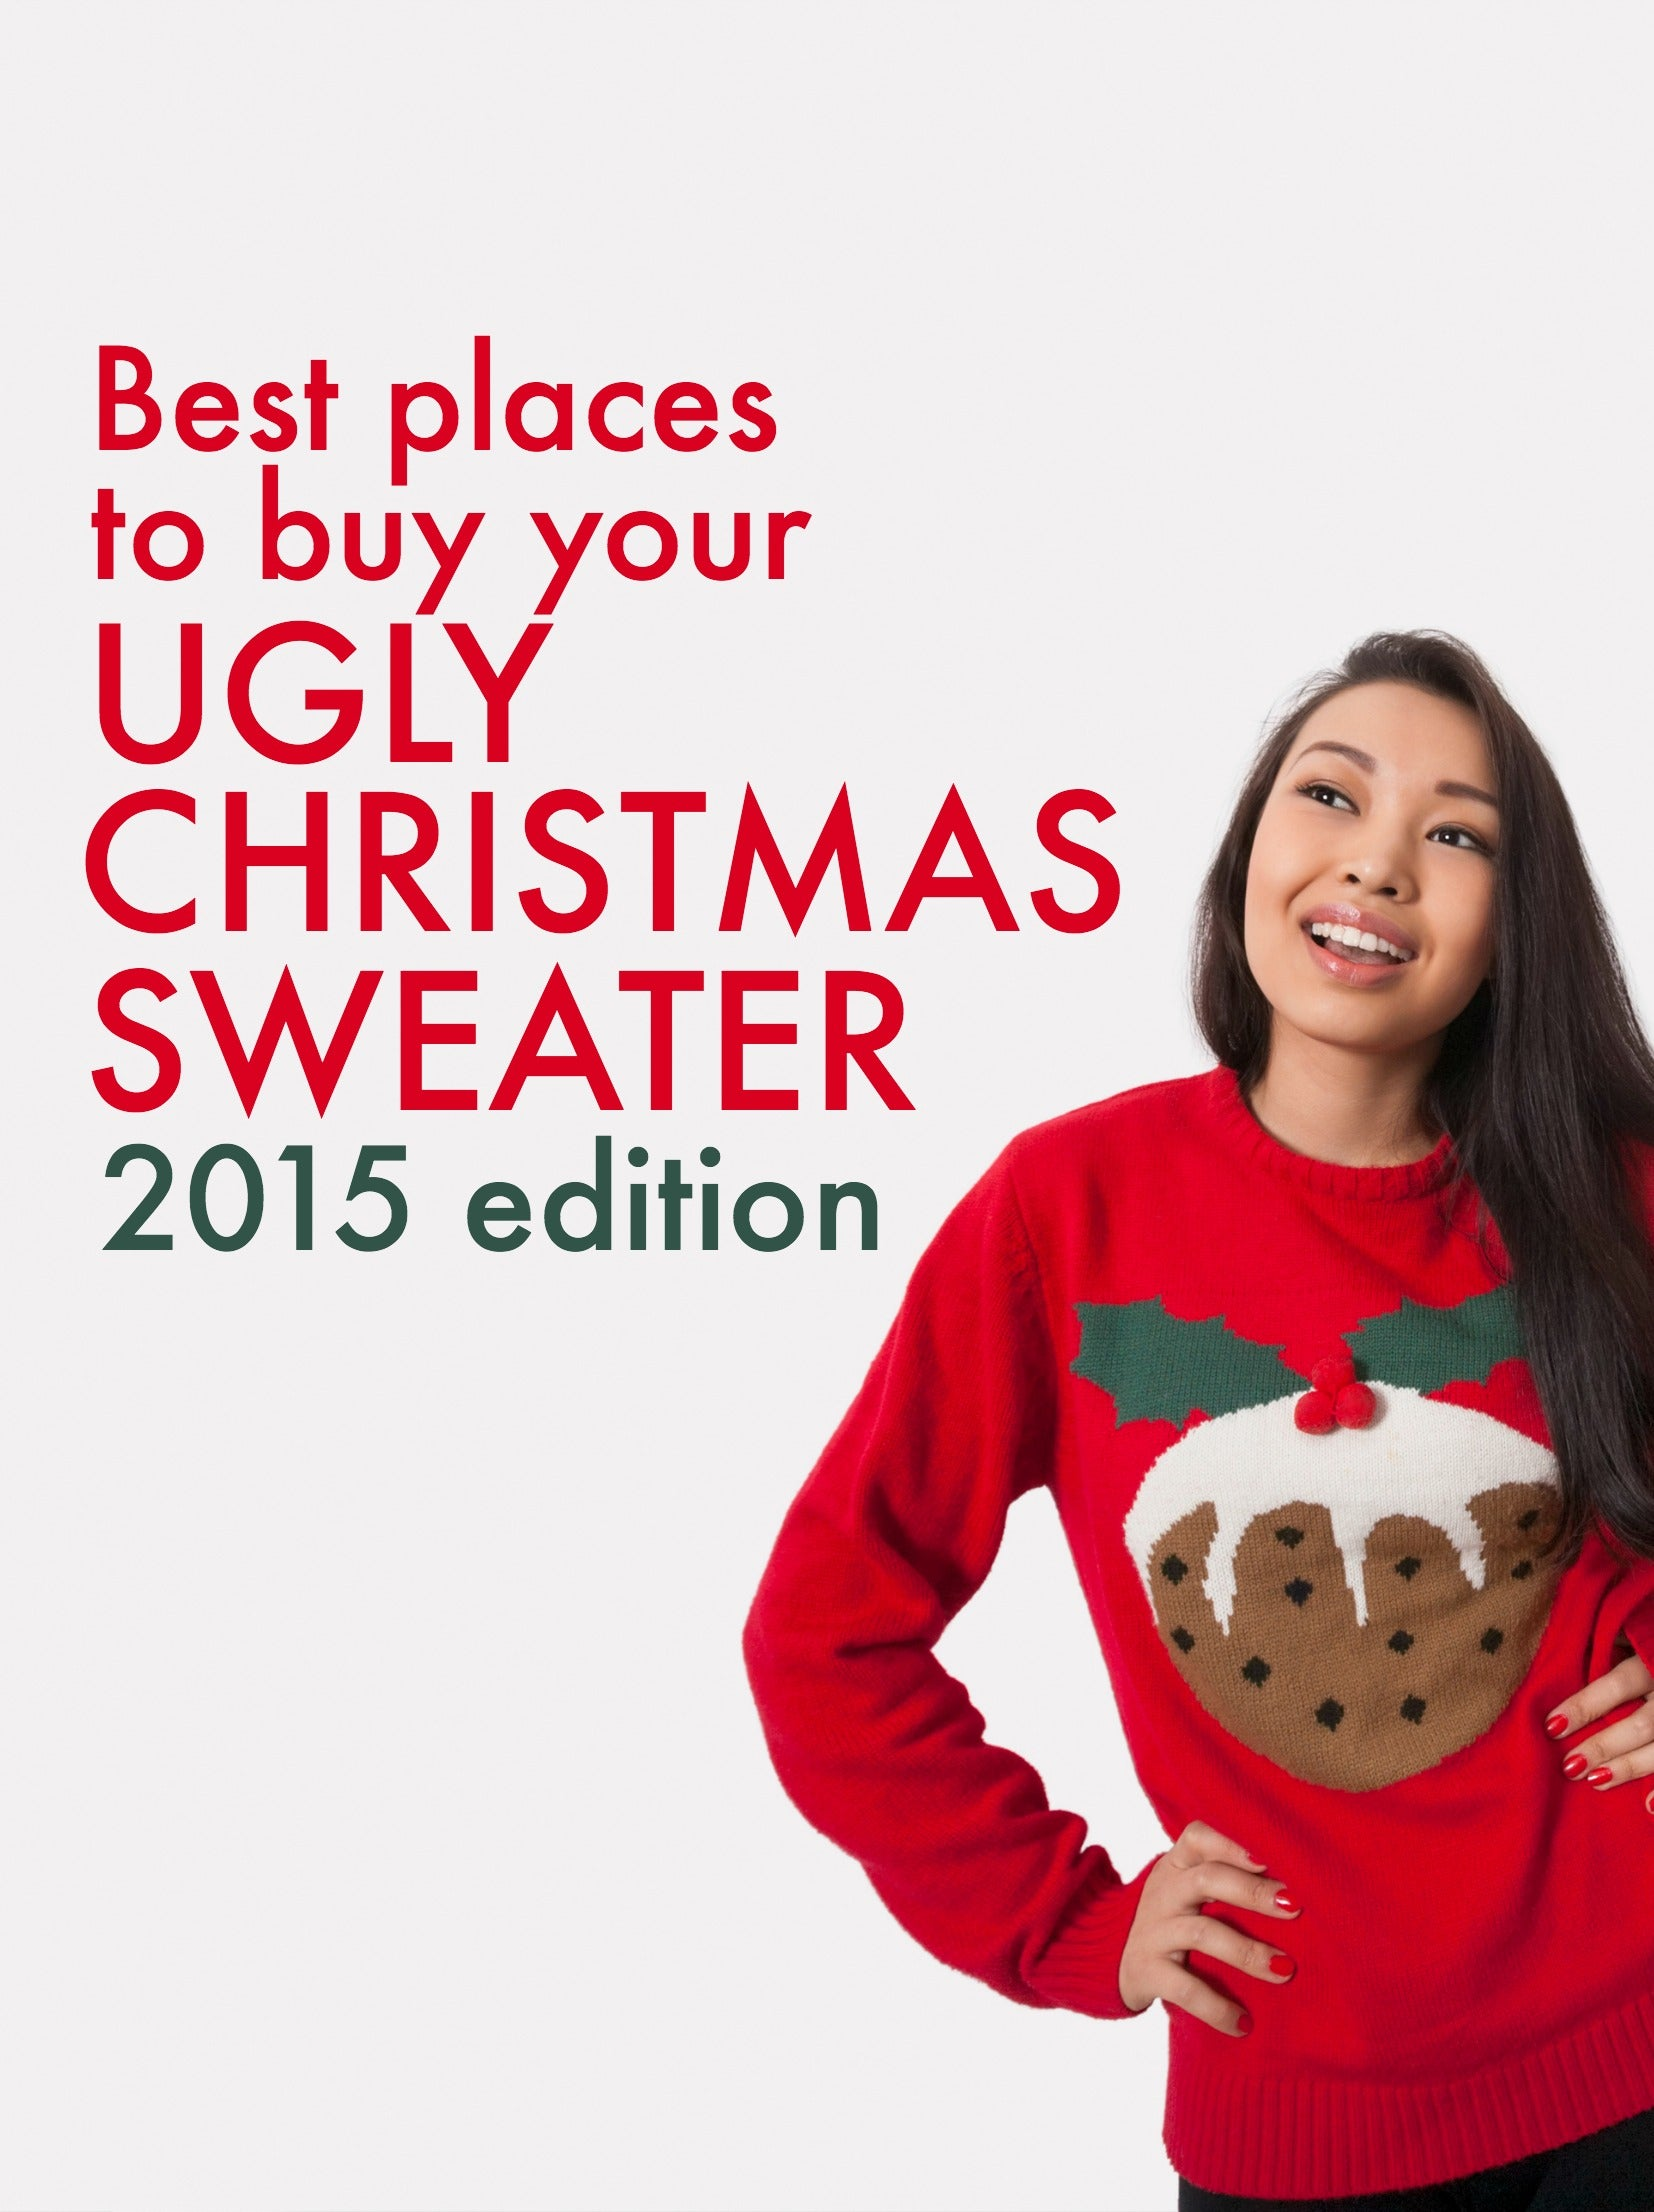 Best places to buy your ugly Christmas sweater